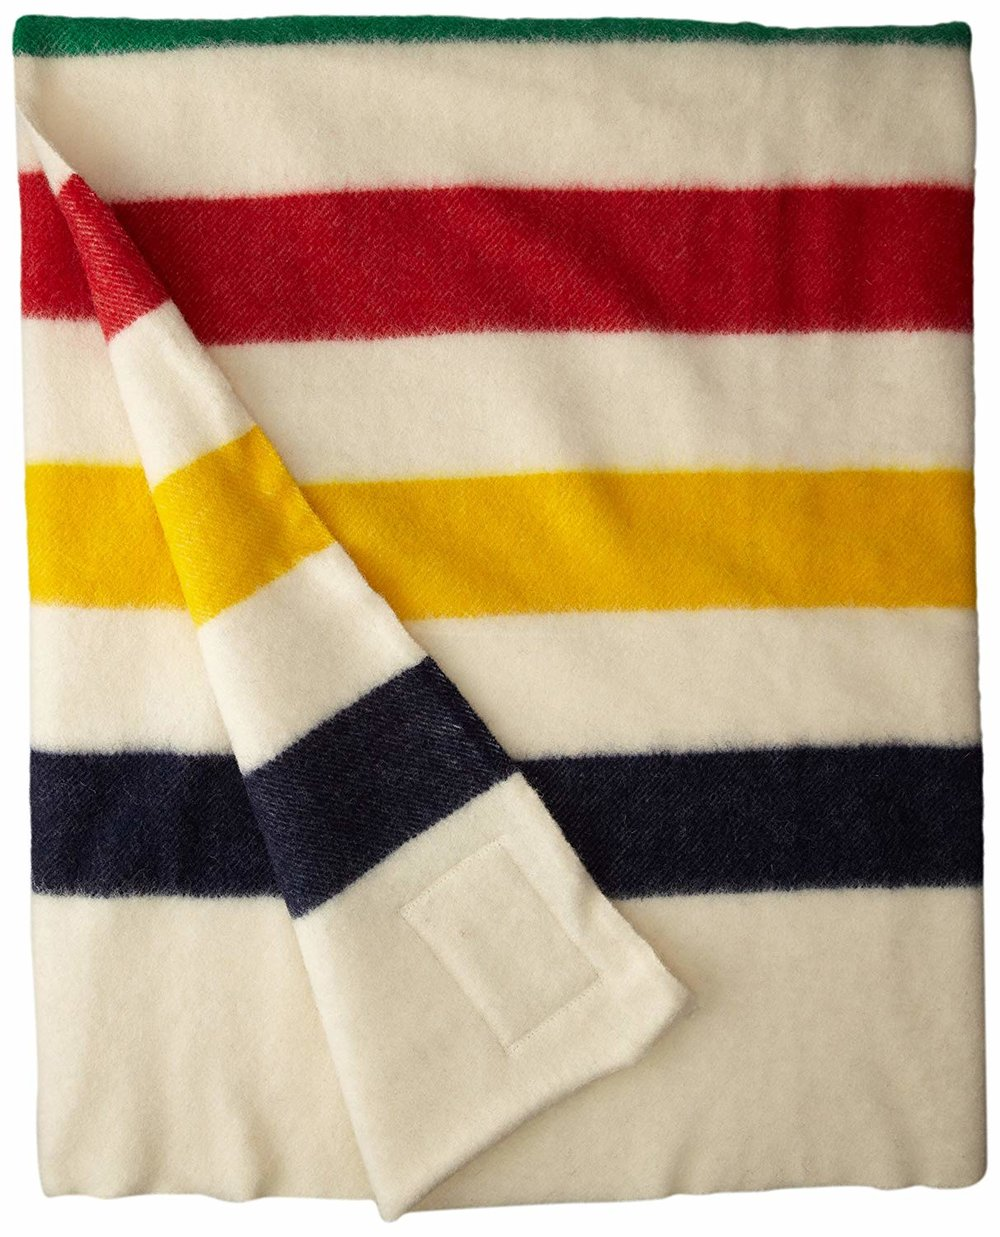 HUDSON BAY 4 POINT BLANKET BY WOOLRICH